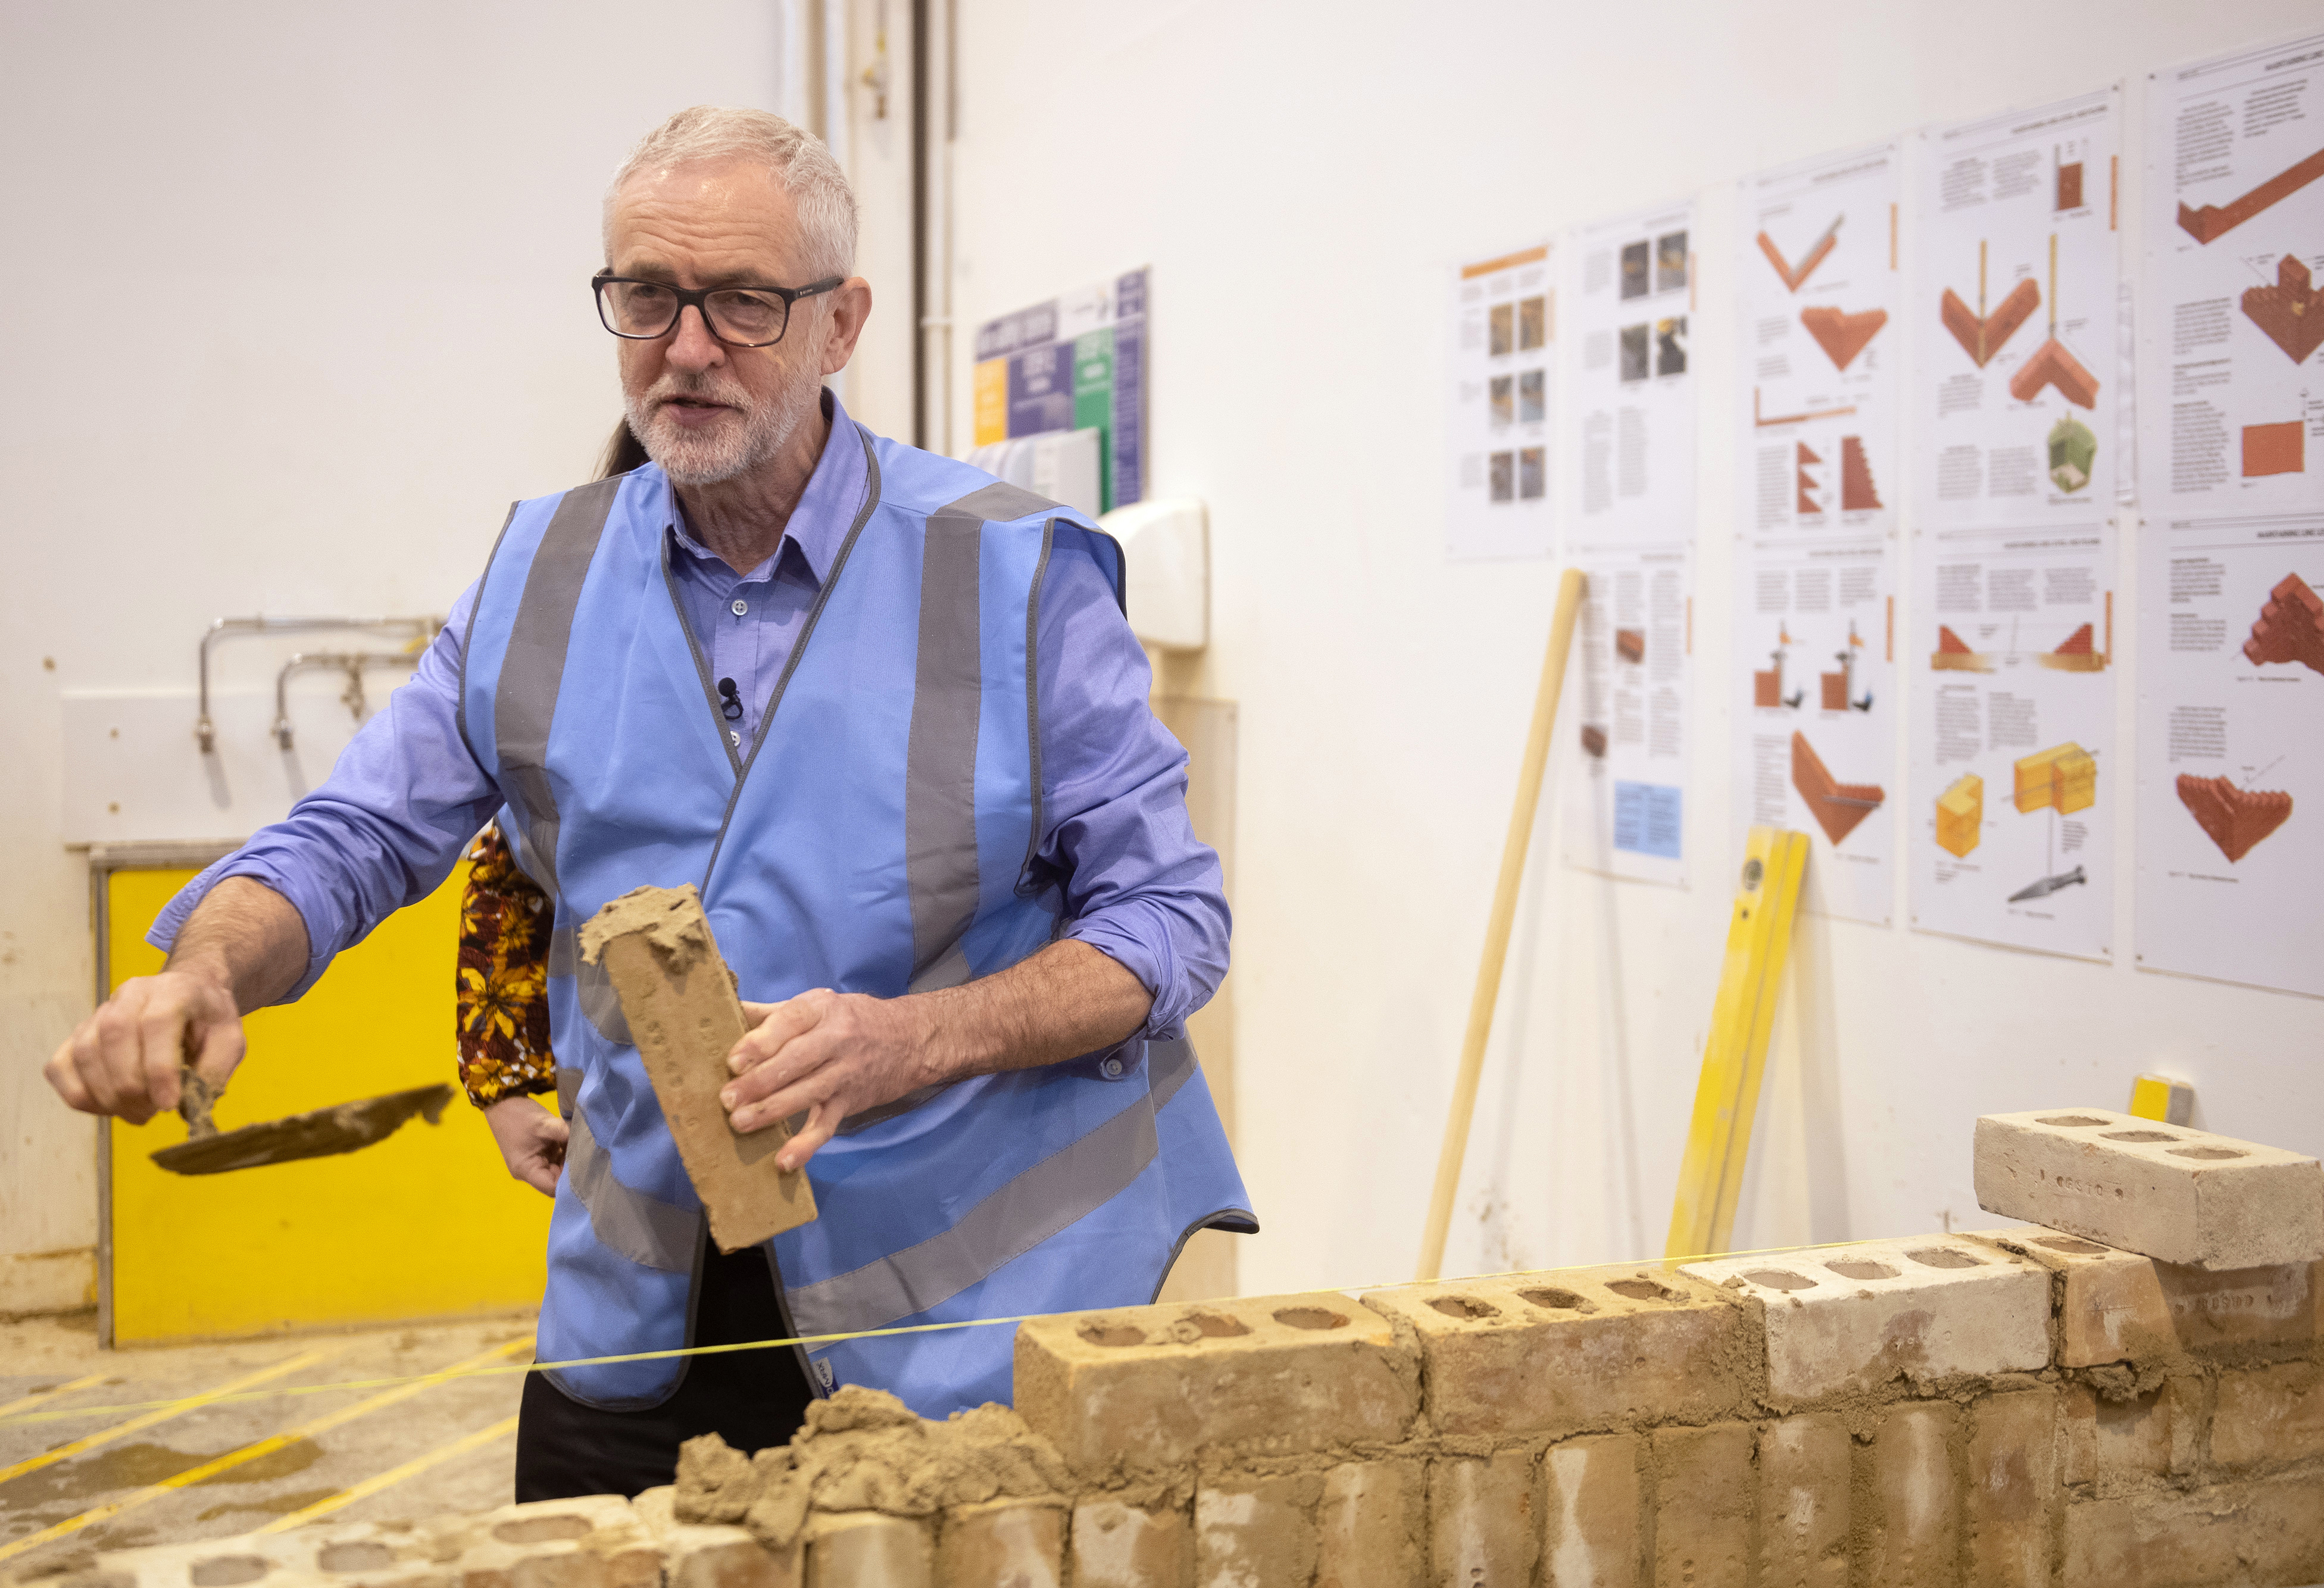 Labour Party leader Jeremy Corbyn tries his hand at bricklaying during a visit to the West Nottinghamshire College Construction Centre, in Ashfield, whilst on the General Election campaign trail.